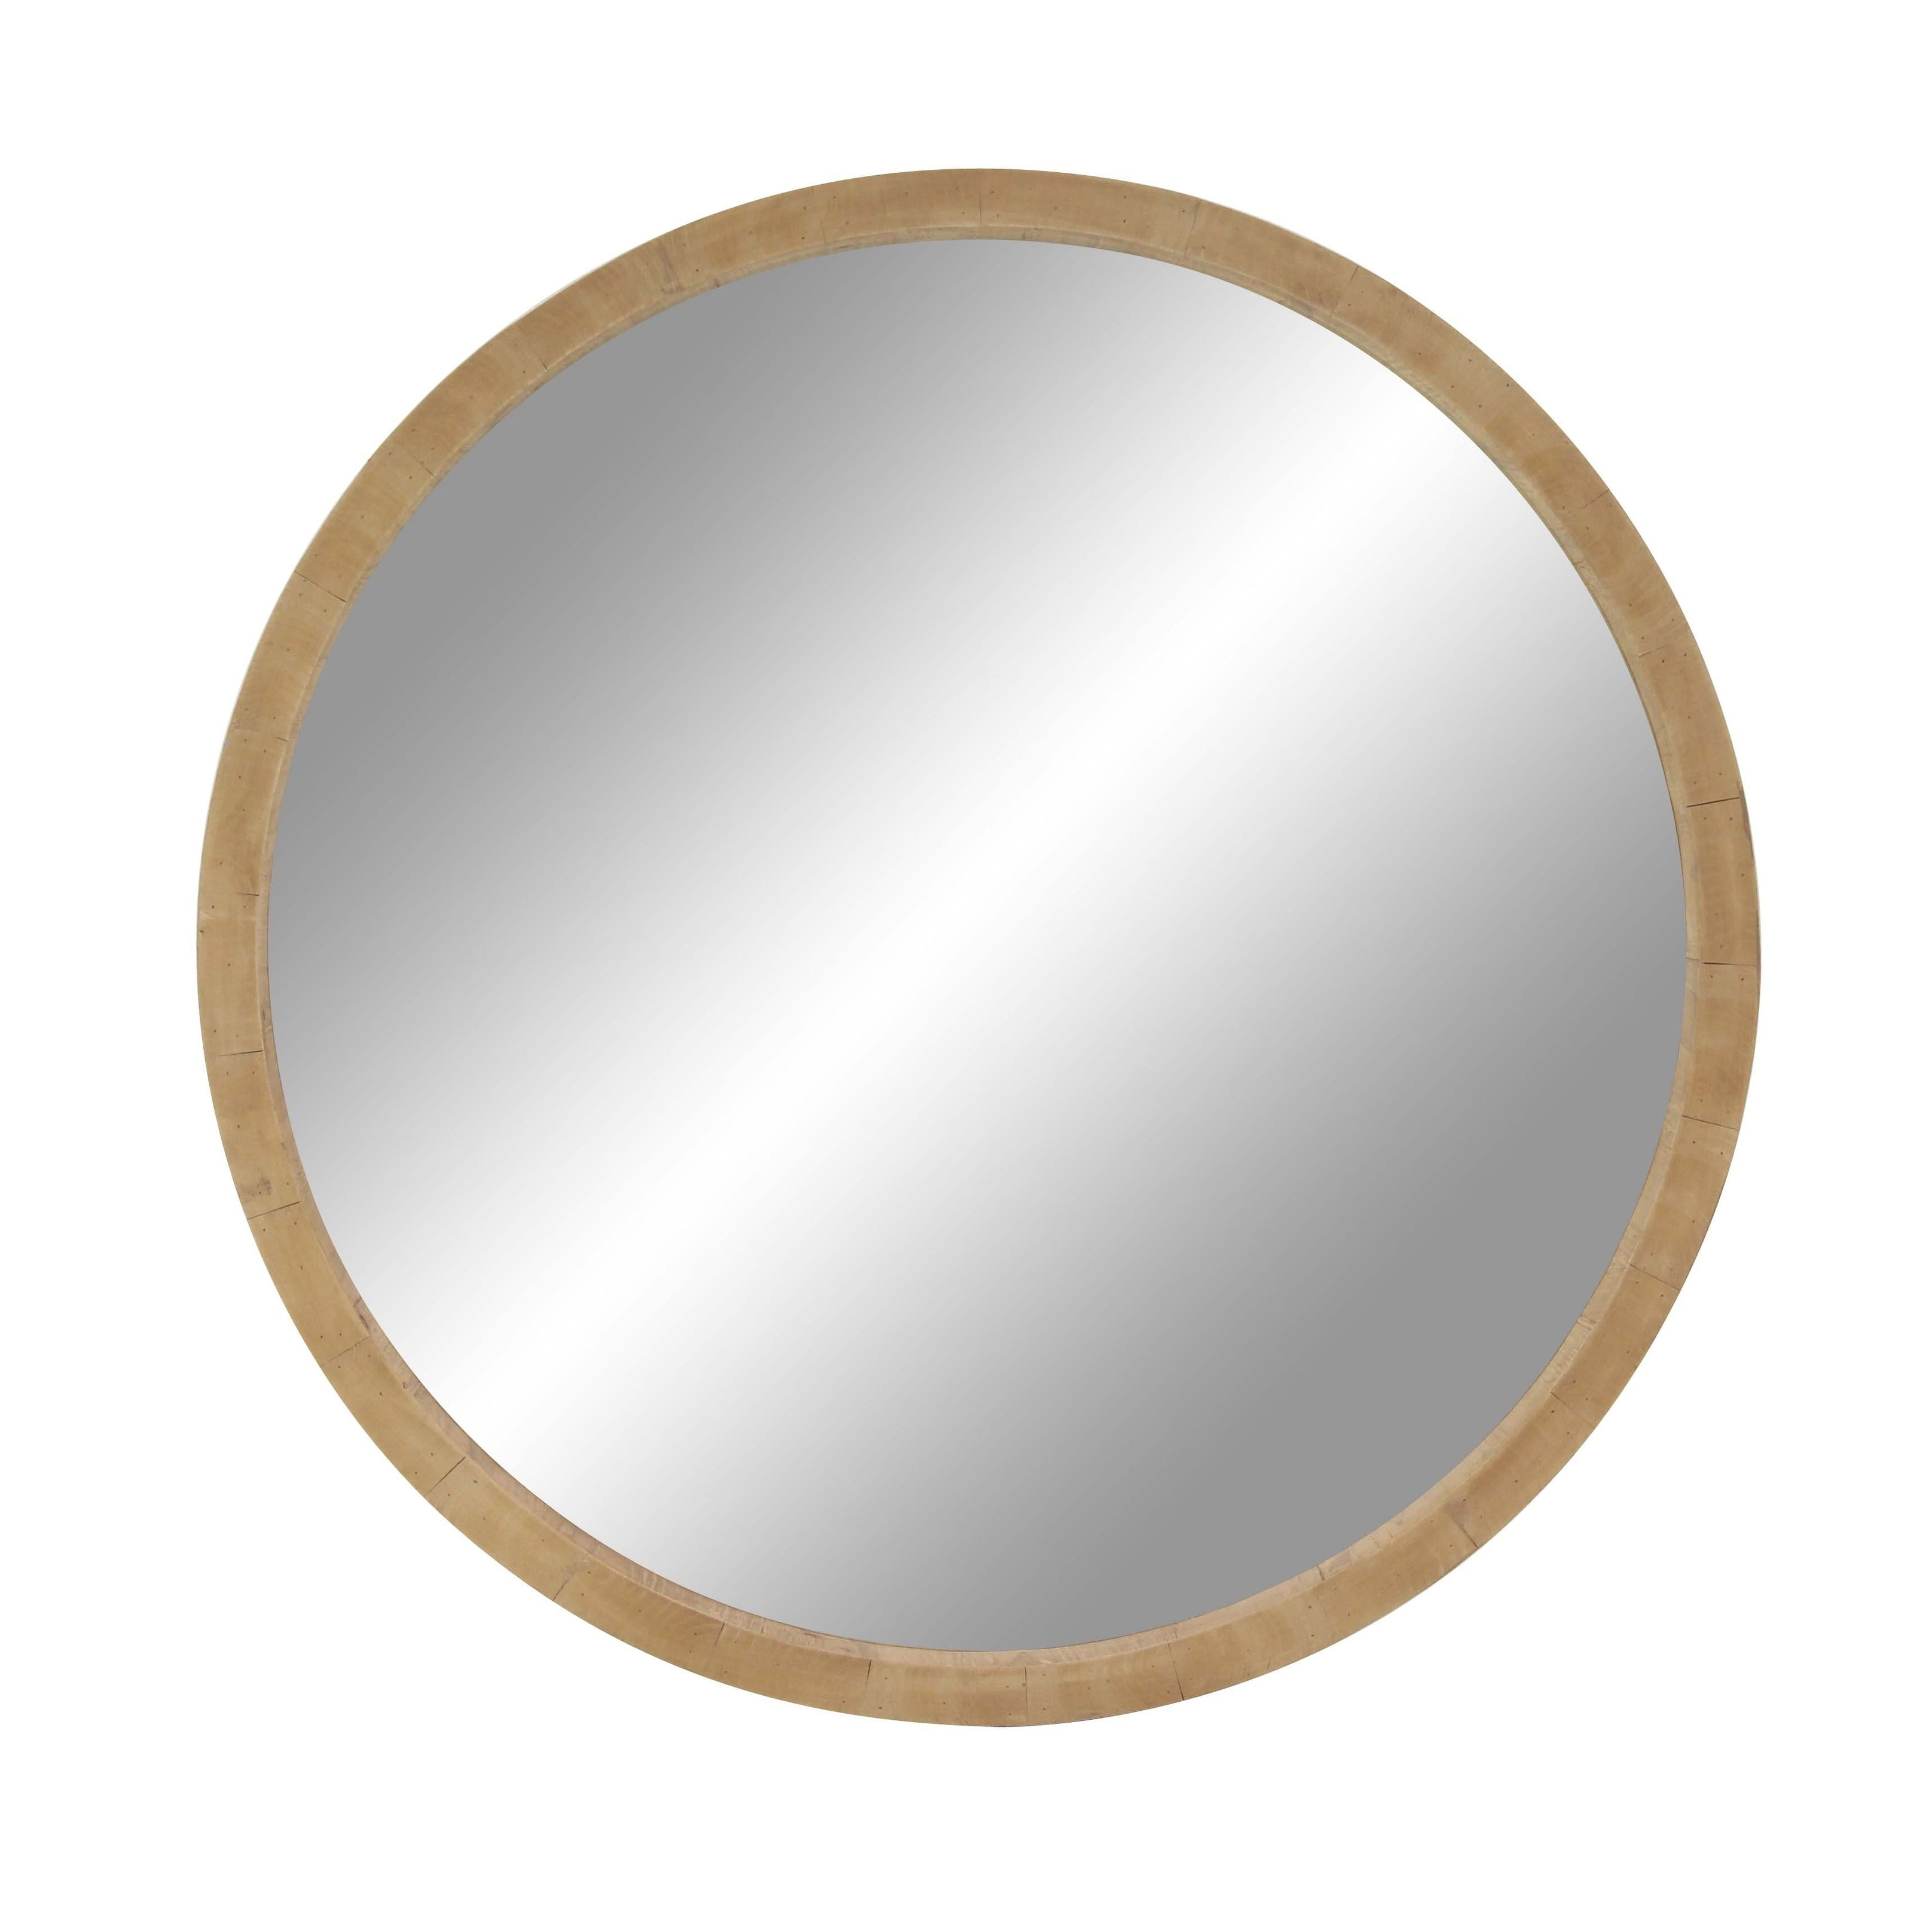 Shop Rustic 40 Inch Round Brown Wooden Framed Wall Mirror By Studio